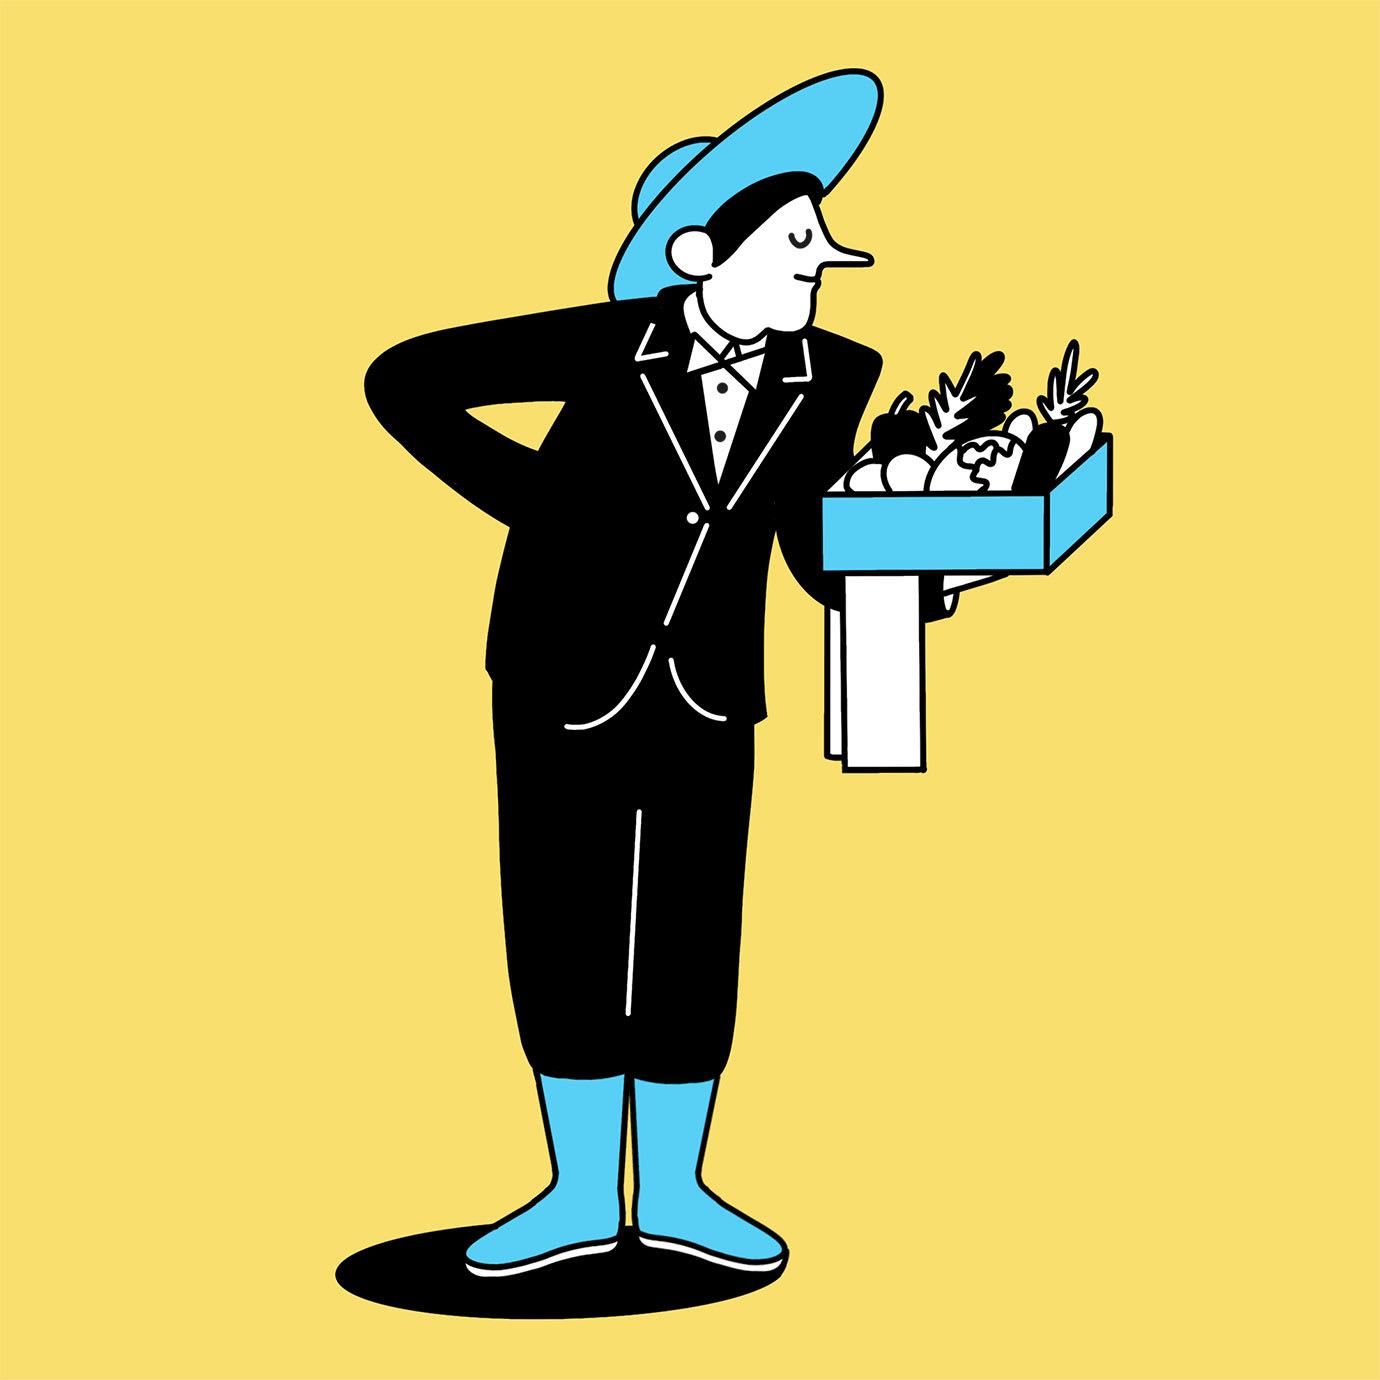 An illustration of a person serving a box full of vegetables.